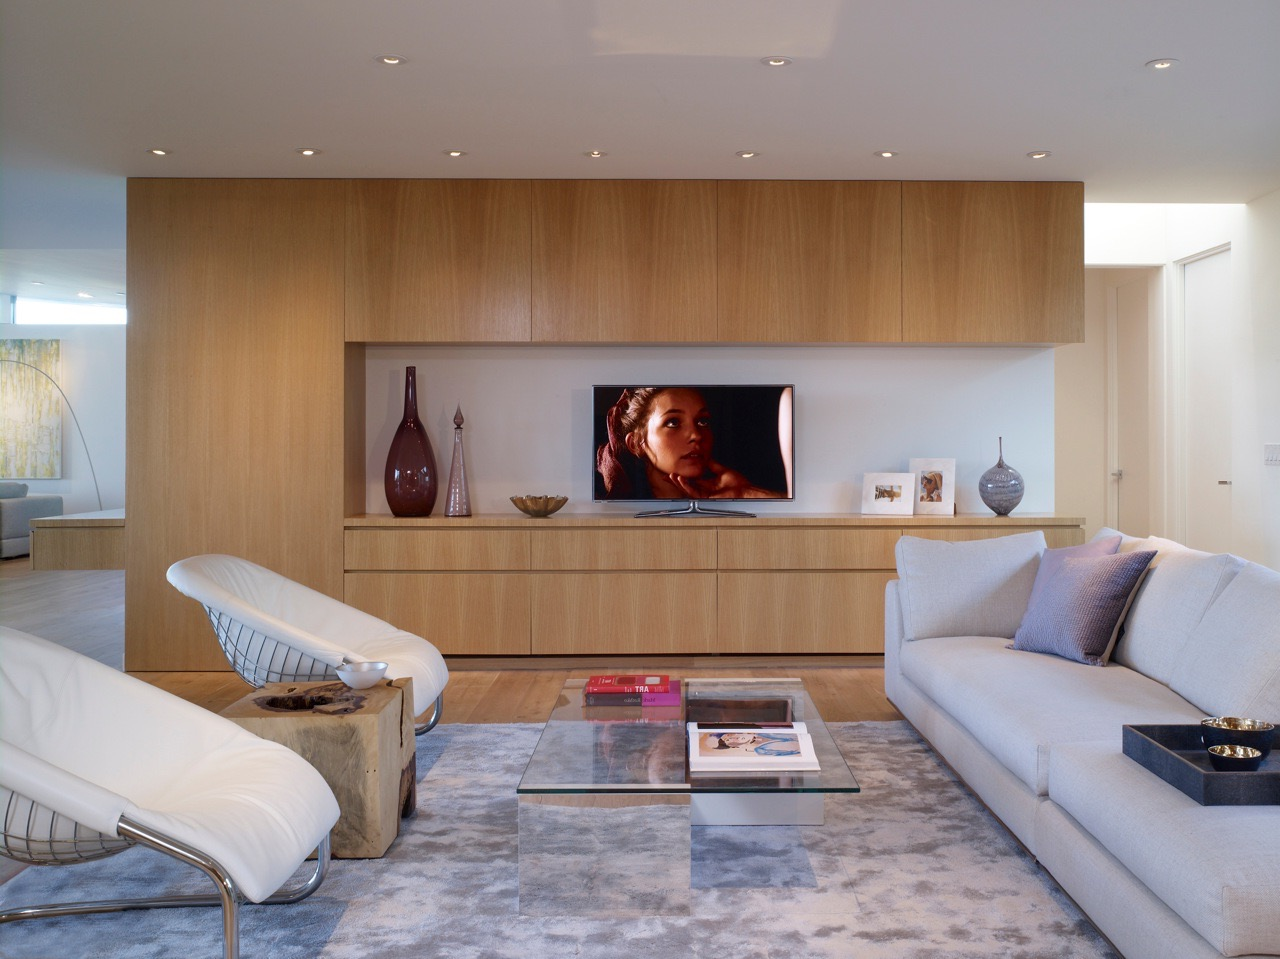 Modern Family Room With Oak Wood Built In TV Cabinets (Image 21 of 31)